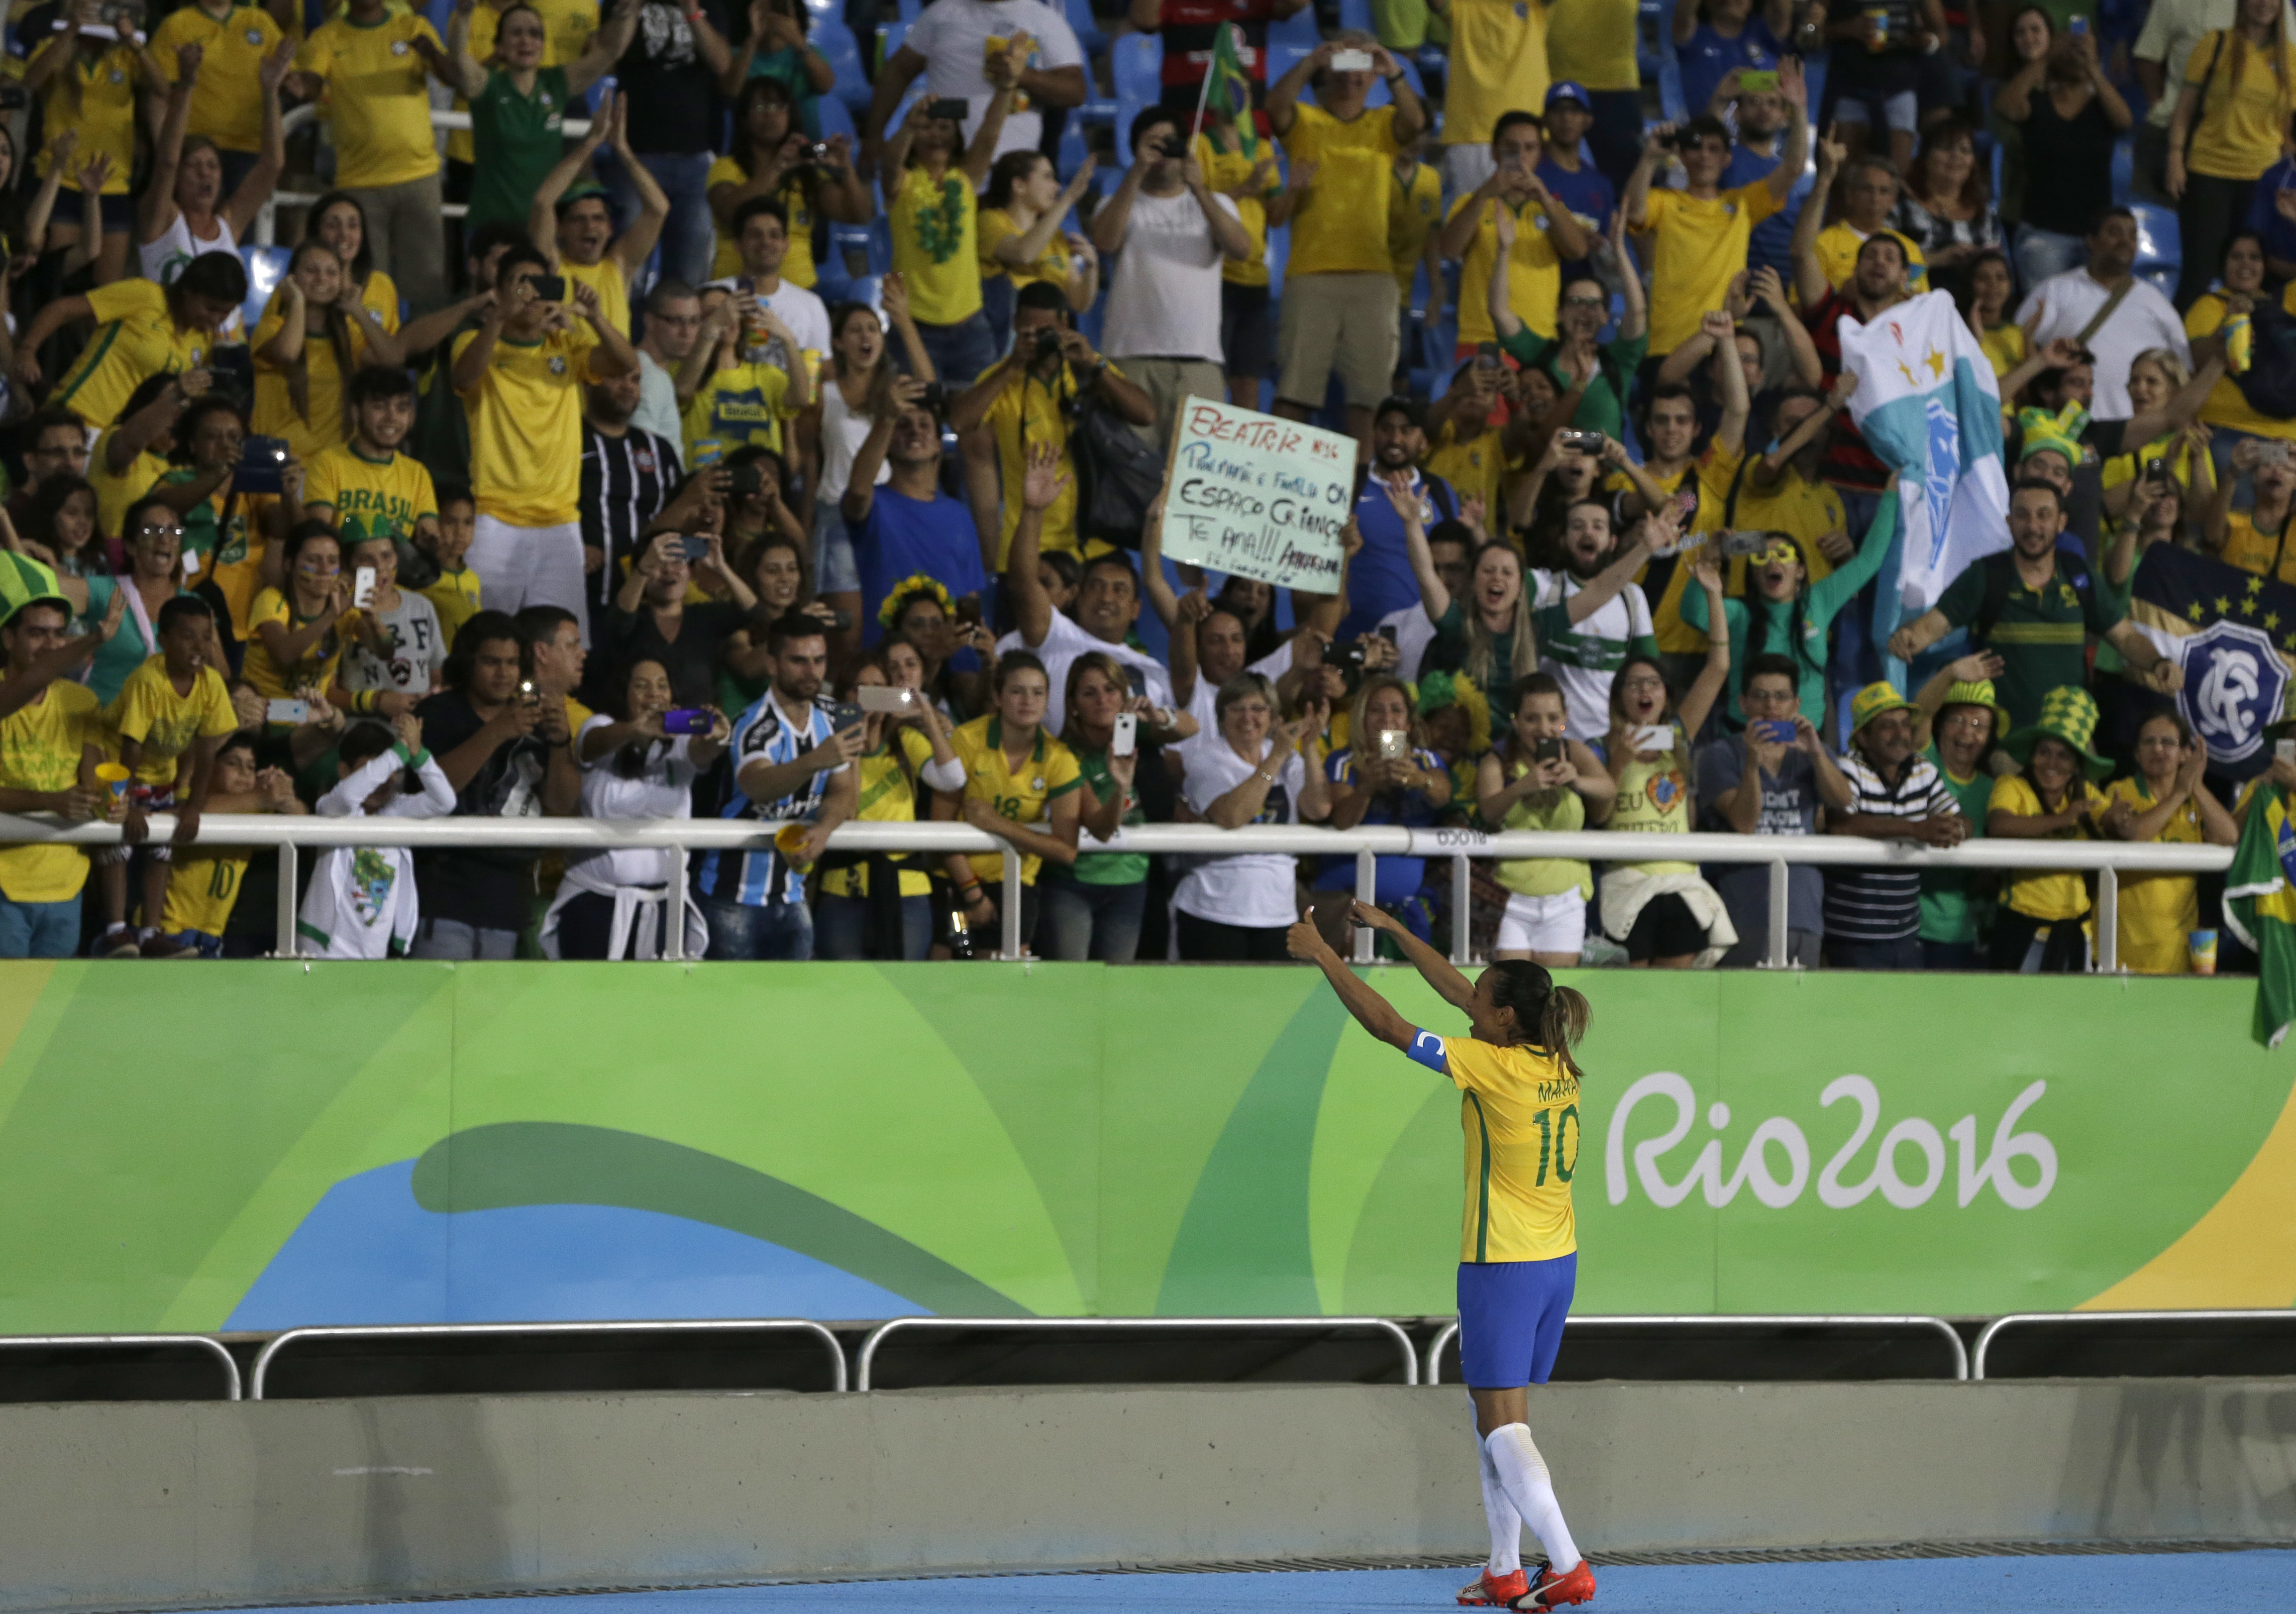 Brazil's Marta celebrates her team's victory with the crowd after a group E match of the women's Olympic football tournament between Sweden and Brazil at the Rio Olympic Stadium in Rio De Janeiro, Brazil, Saturday, Aug. 6, 2016. Brazil won the match 5-1.